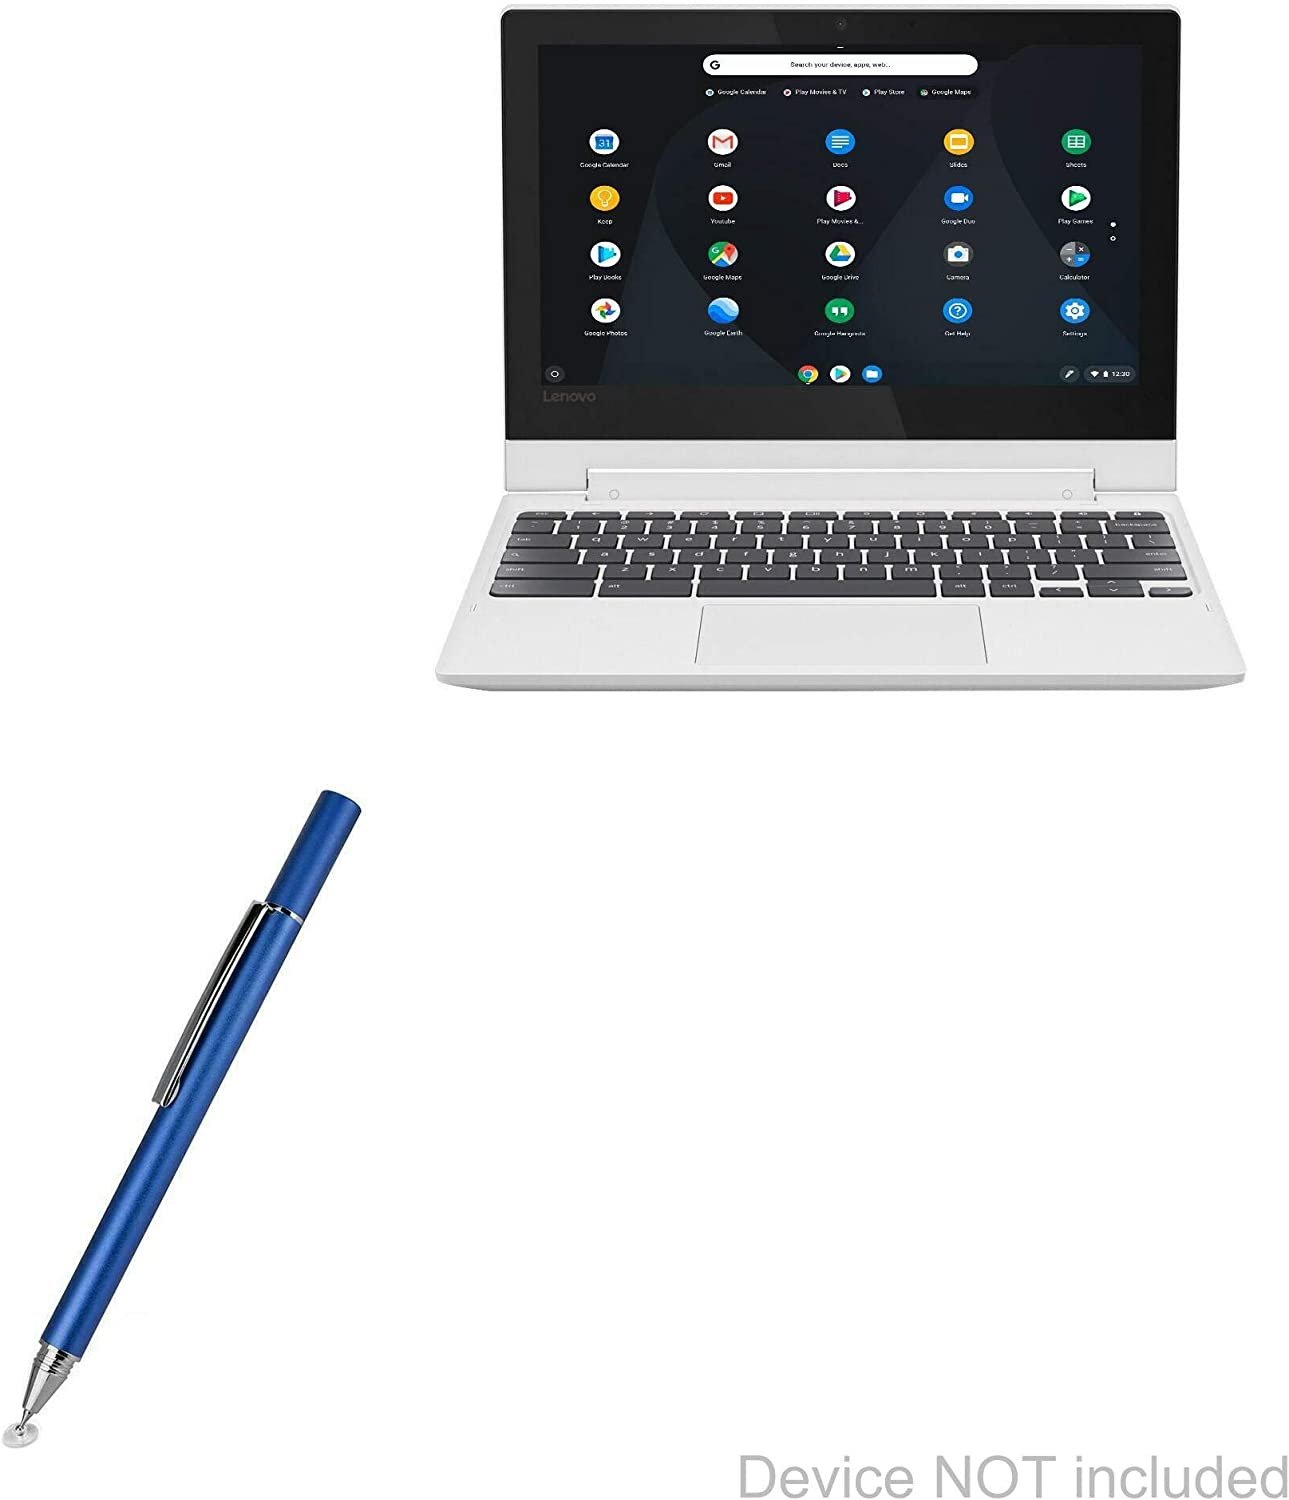 "Lenovo C330 Convertible 2-in-1 Chromebook (11.6"") Stylus Pen, BoxWave [FineTouch Capacitive Stylus] Super Precise Stylus Pen for Lenovo C330 Convertible 2-in-1 Chromebook (11.6"") - Lunar Blue"